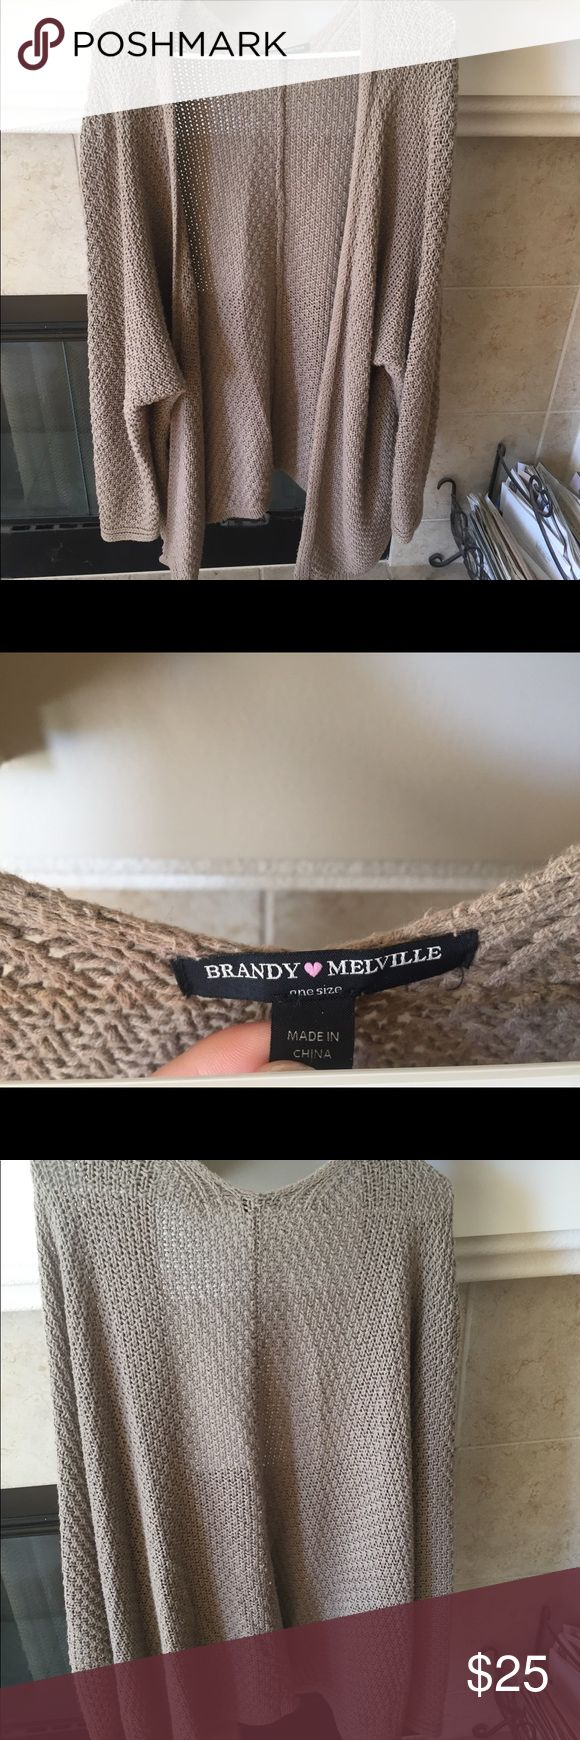 Brandy Melville cardigan Very long olive colored cardigan from brandy Melville. Lightly worn. Brandy Melville Sweaters Cardigans